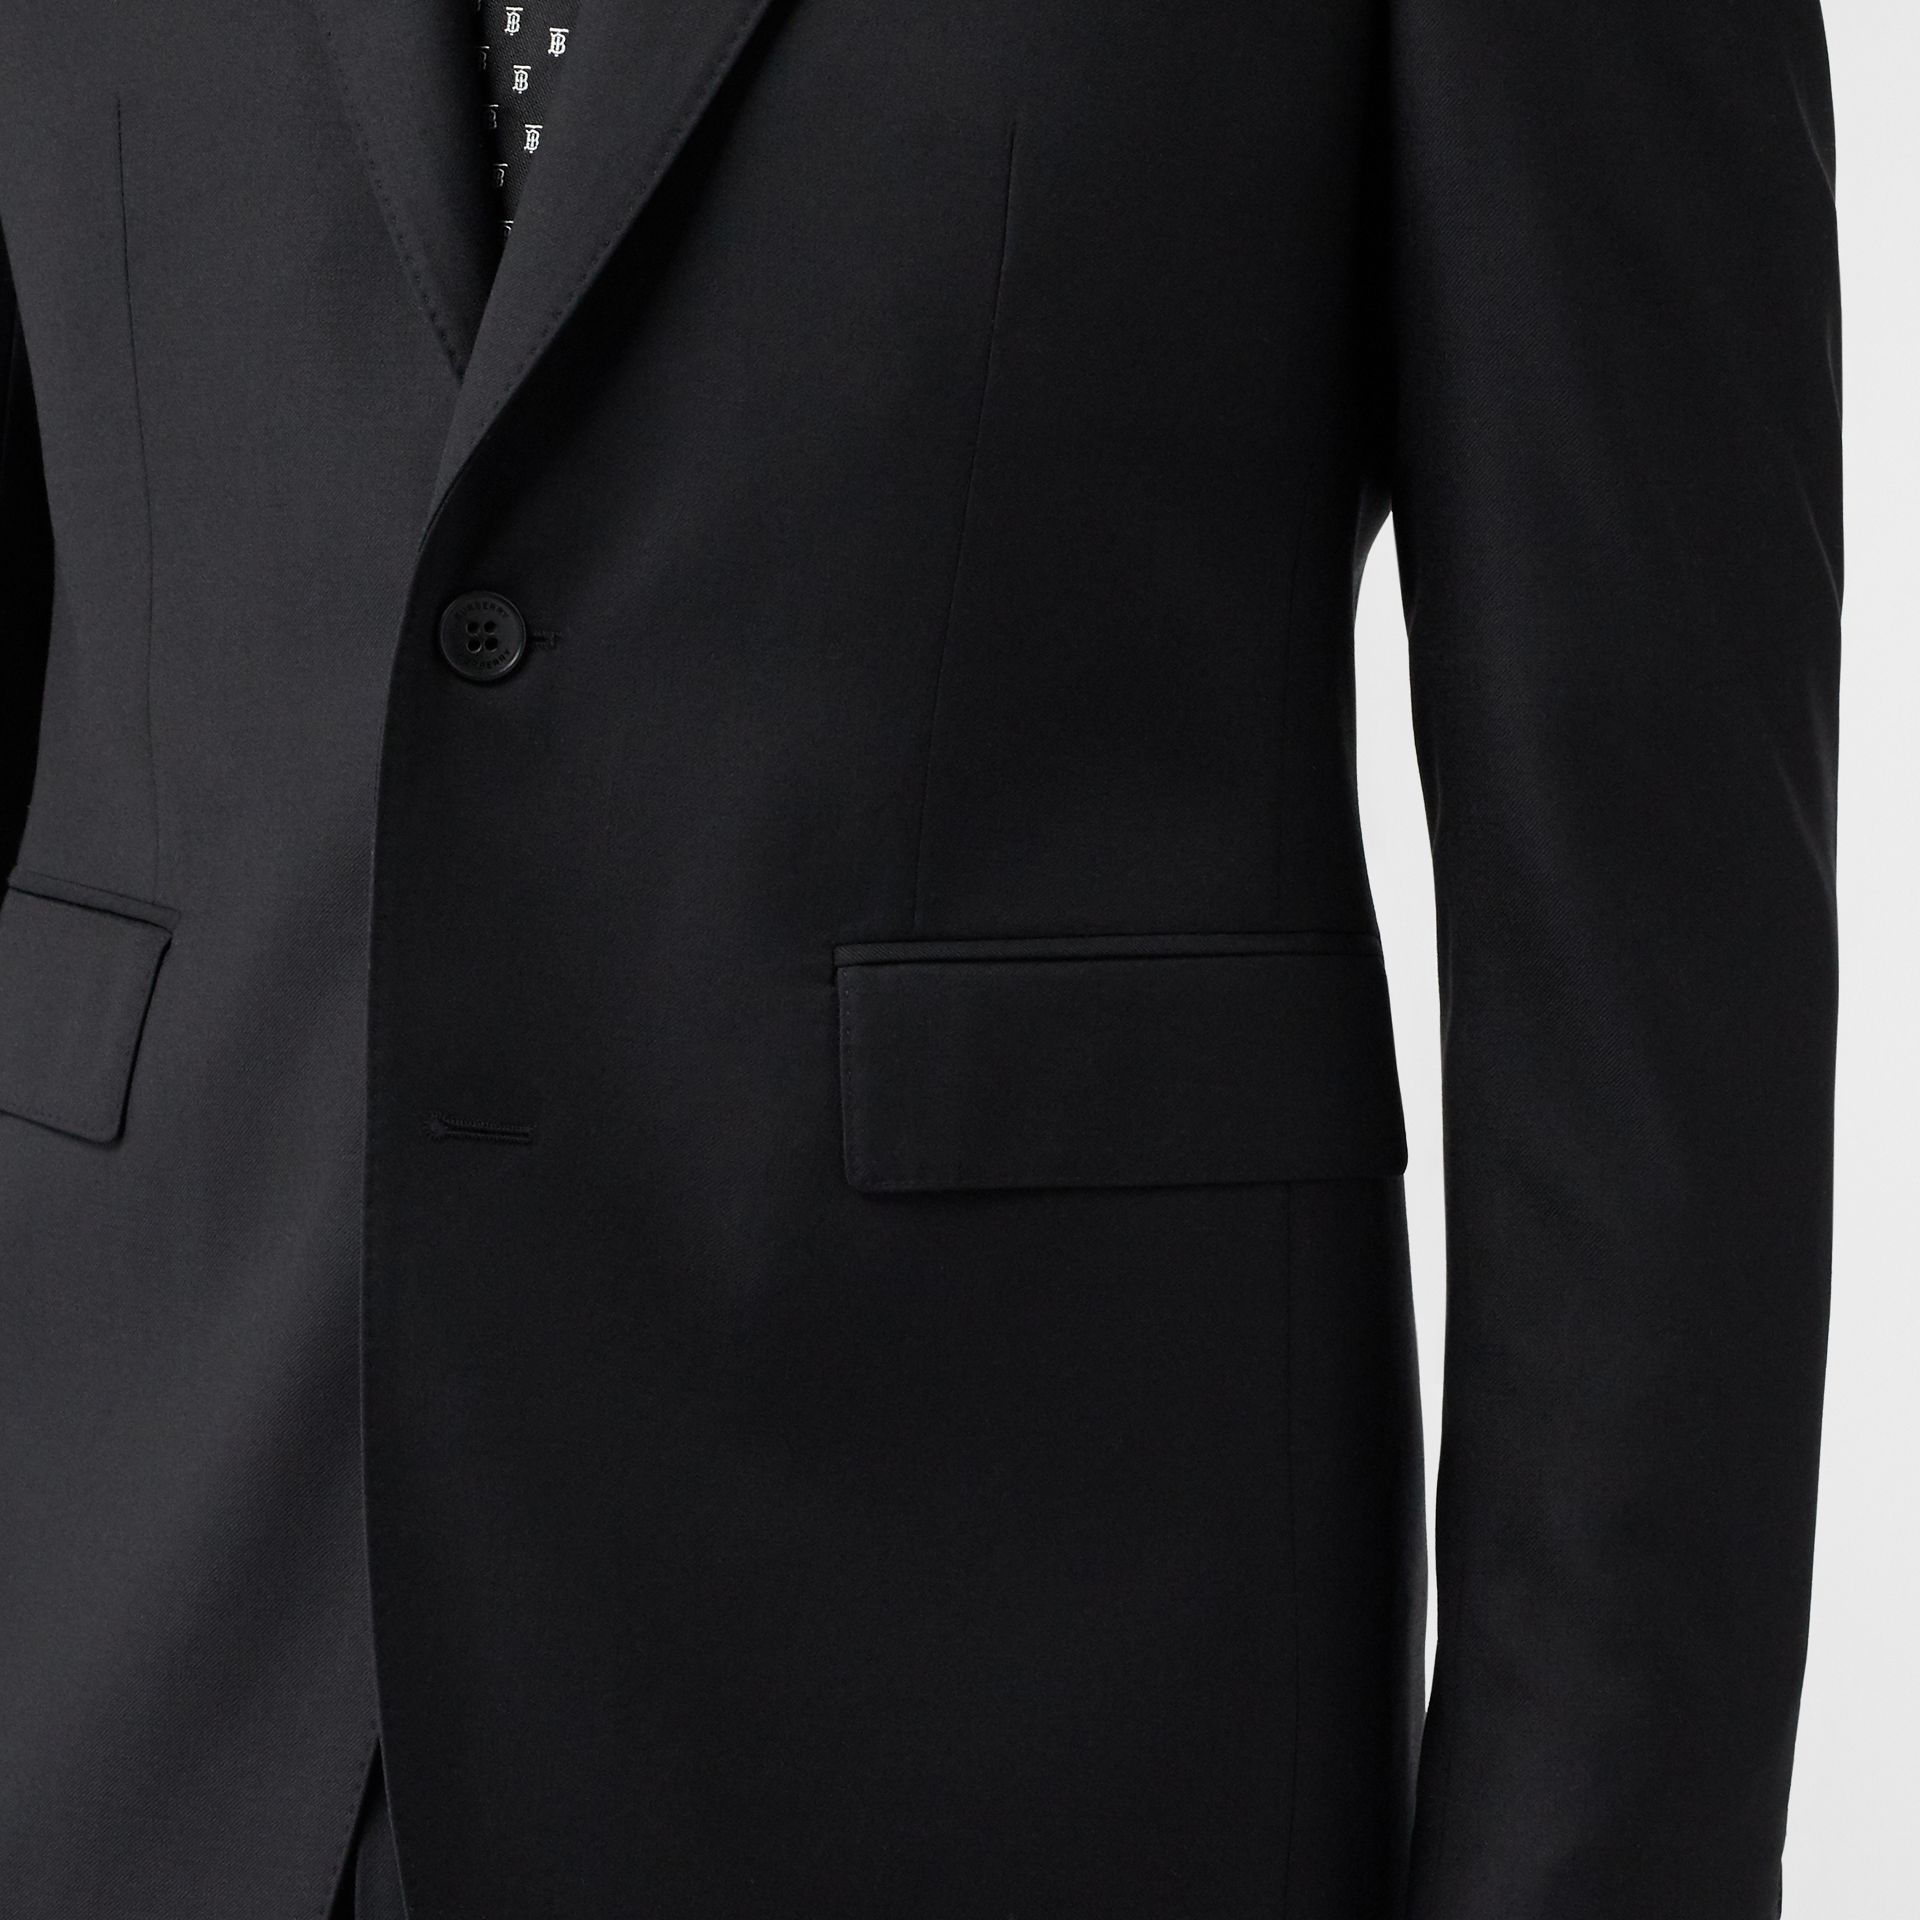 Classic Fit Wool Suit in Black - Men | Burberry United Kingdom - gallery image 4